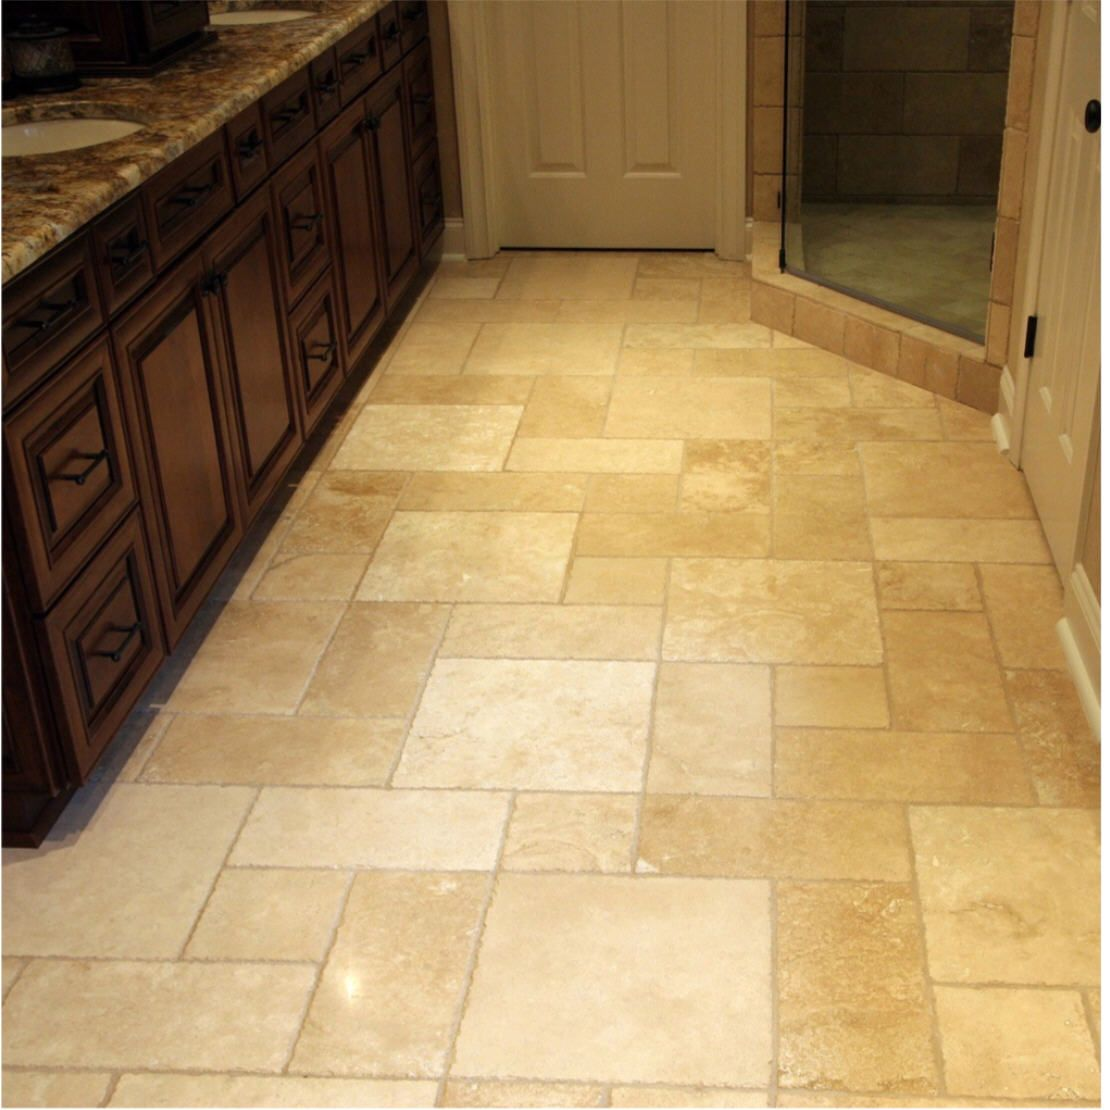 Travertine Tile Floor Pattern Called Hopscotch